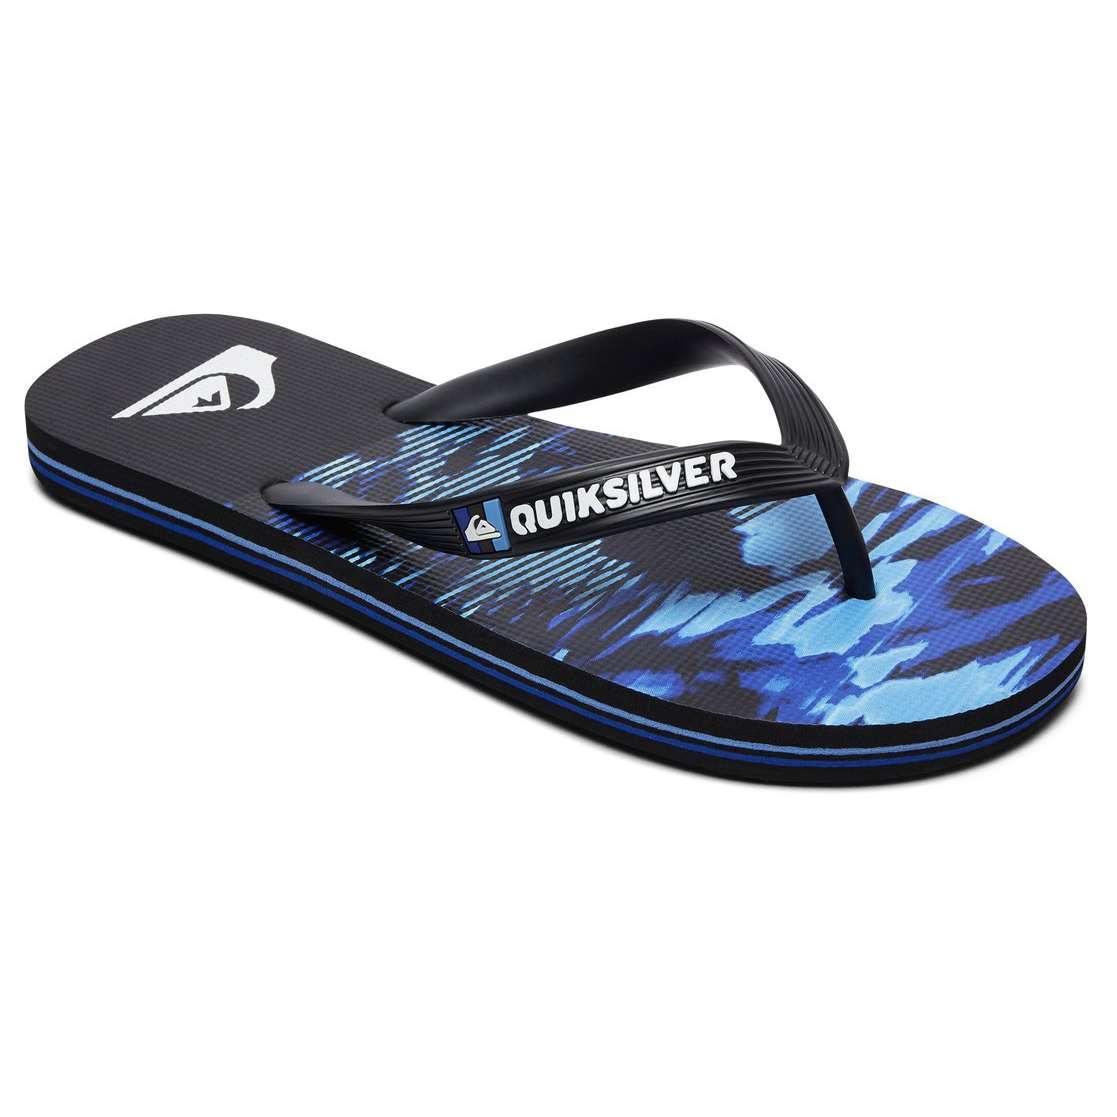 Quiksilver Boys' Molokai Night Marcher Flip-Flops - Black, 5